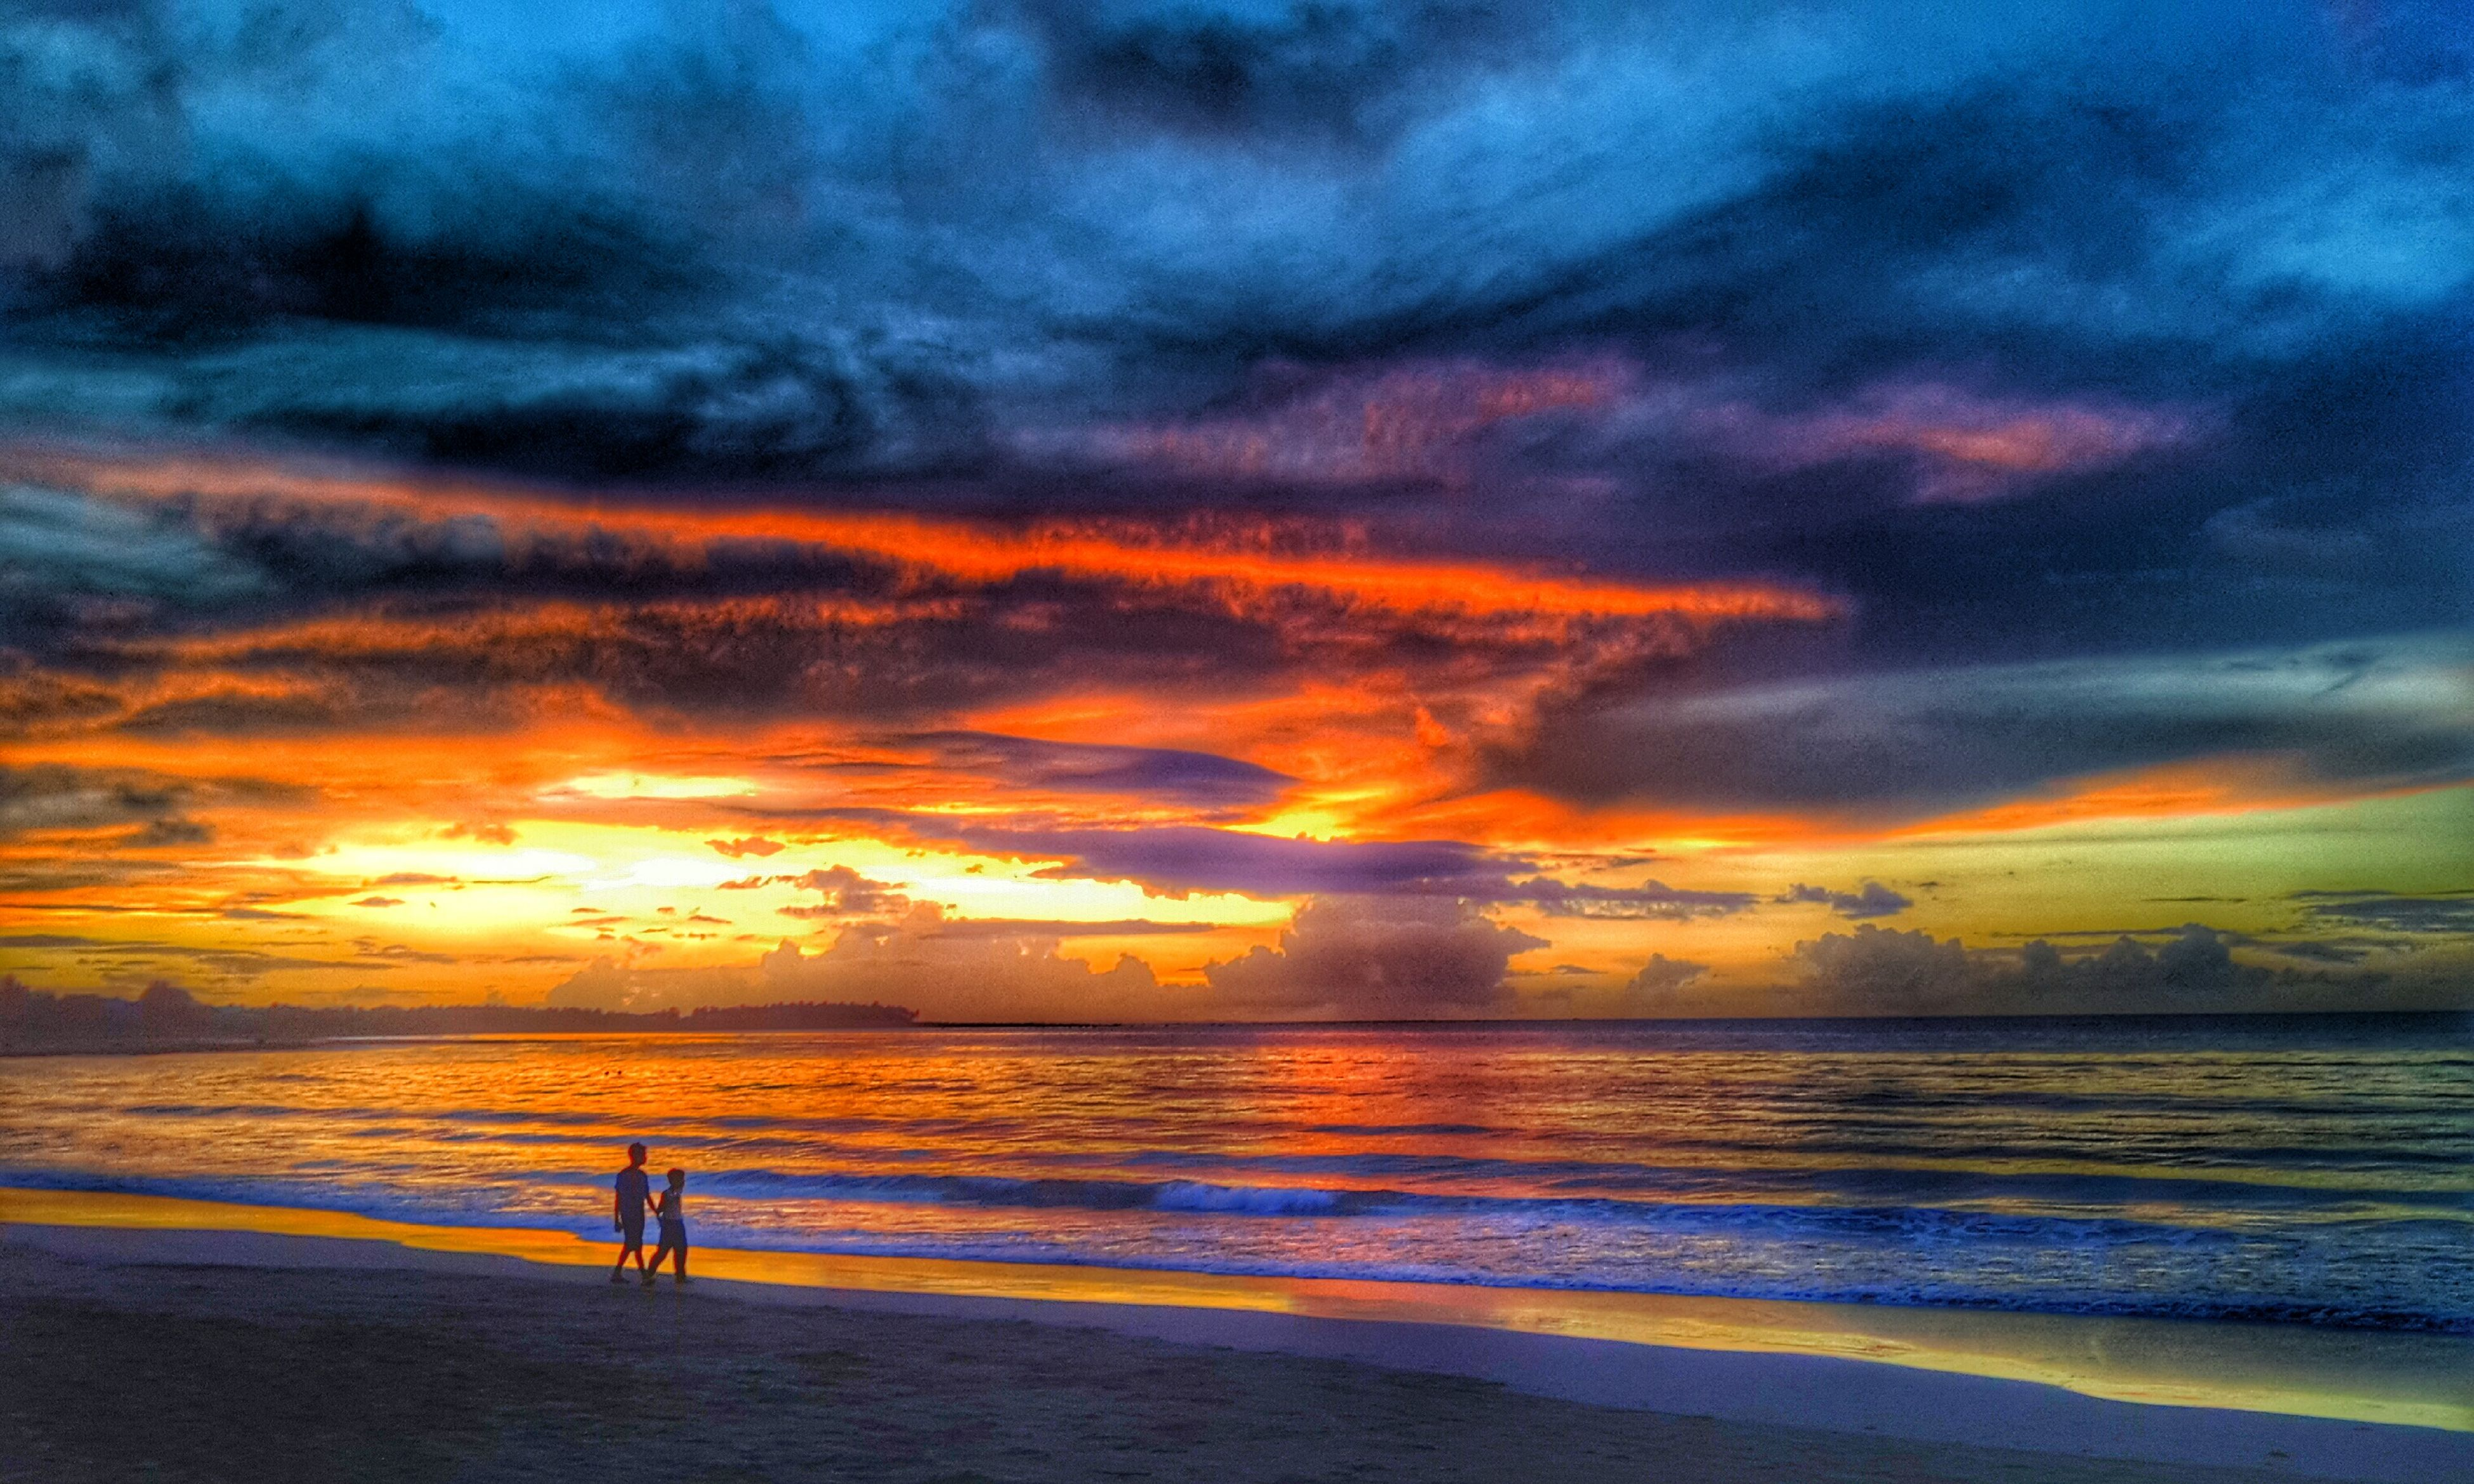 sea, sunset, sky, water, horizon over water, beach, cloud - sky, scenics, beauty in nature, tranquil scene, silhouette, tranquility, shore, dramatic sky, cloudy, cloud, nature, orange color, idyllic